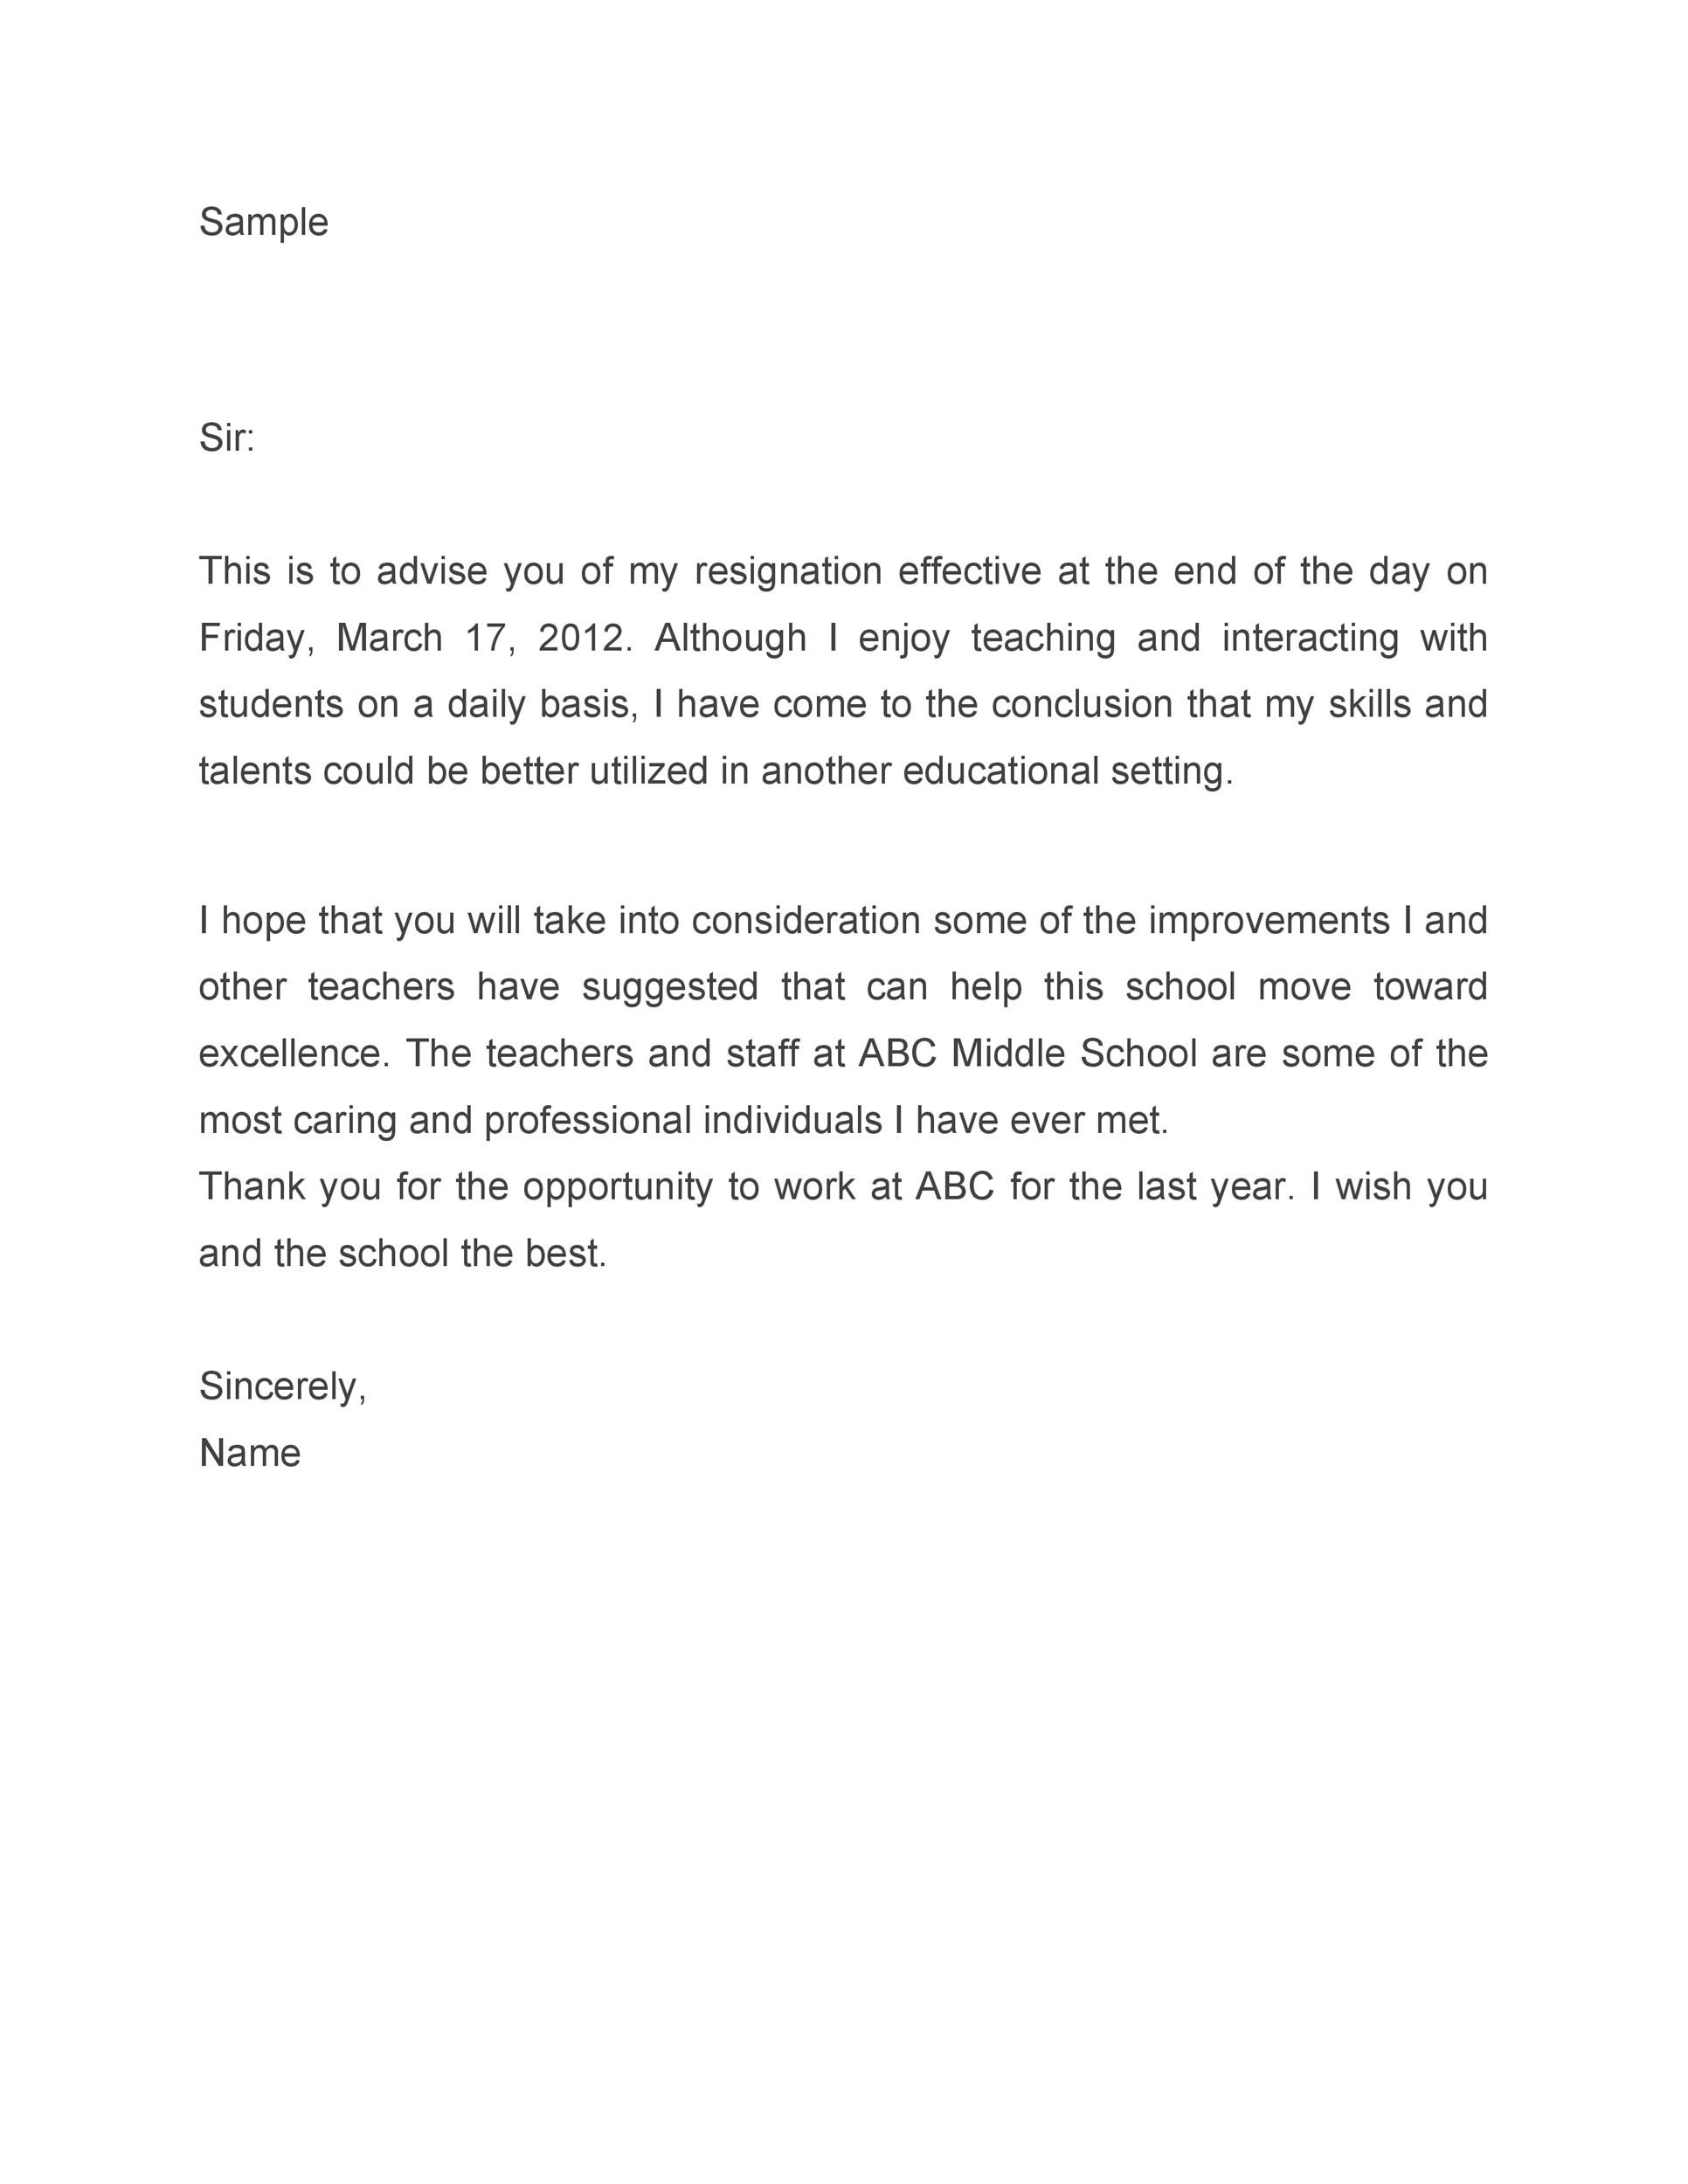 Sample Letter Of Resignation Teacher.50 Best Teacher Resignation Letters Ms Word ᐅ Template Lab